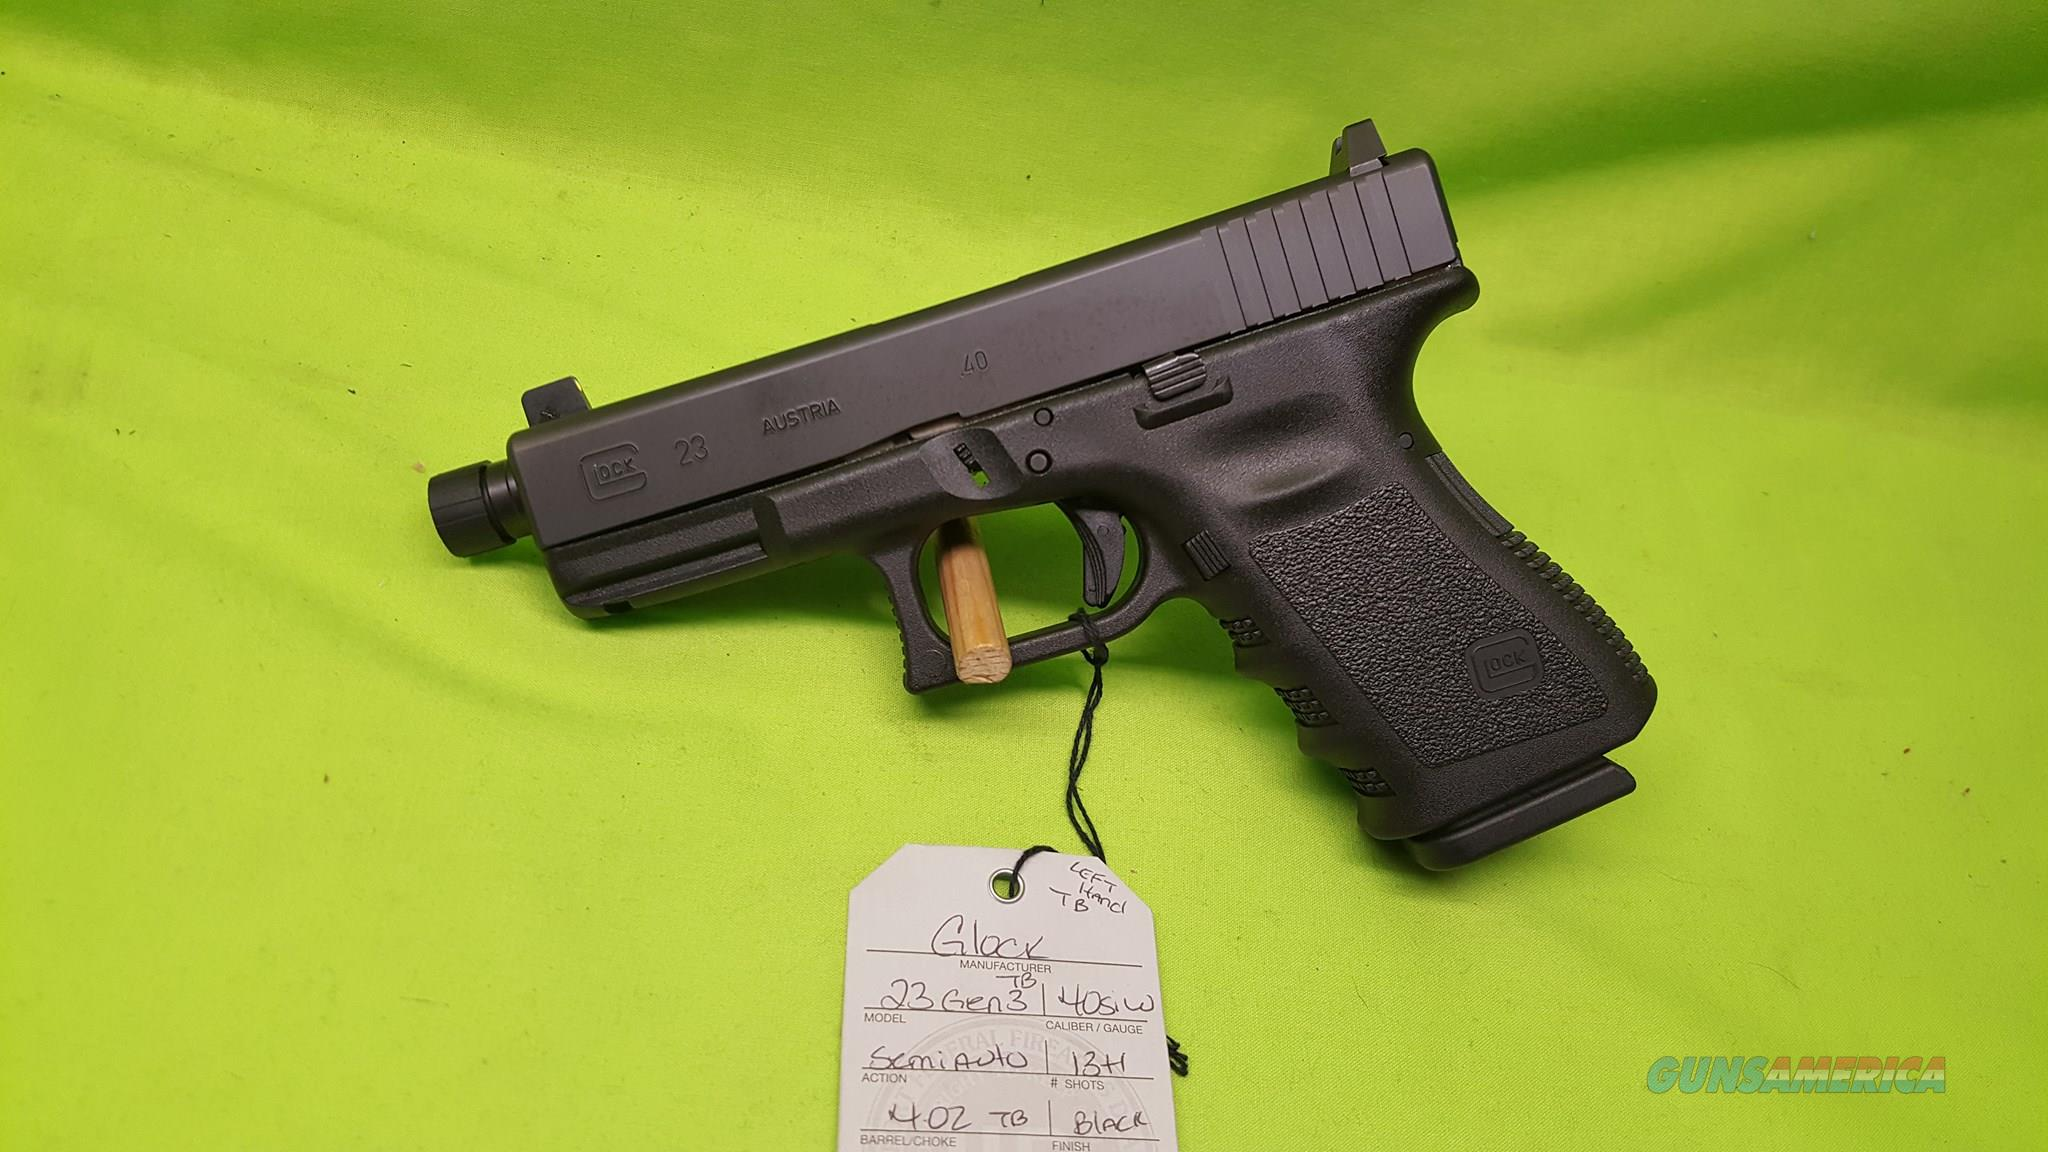 GLOCK 23 GEN 3 40S&W TB THREADED BARREL 13RD  Guns > Pistols > Glock Pistols > 23